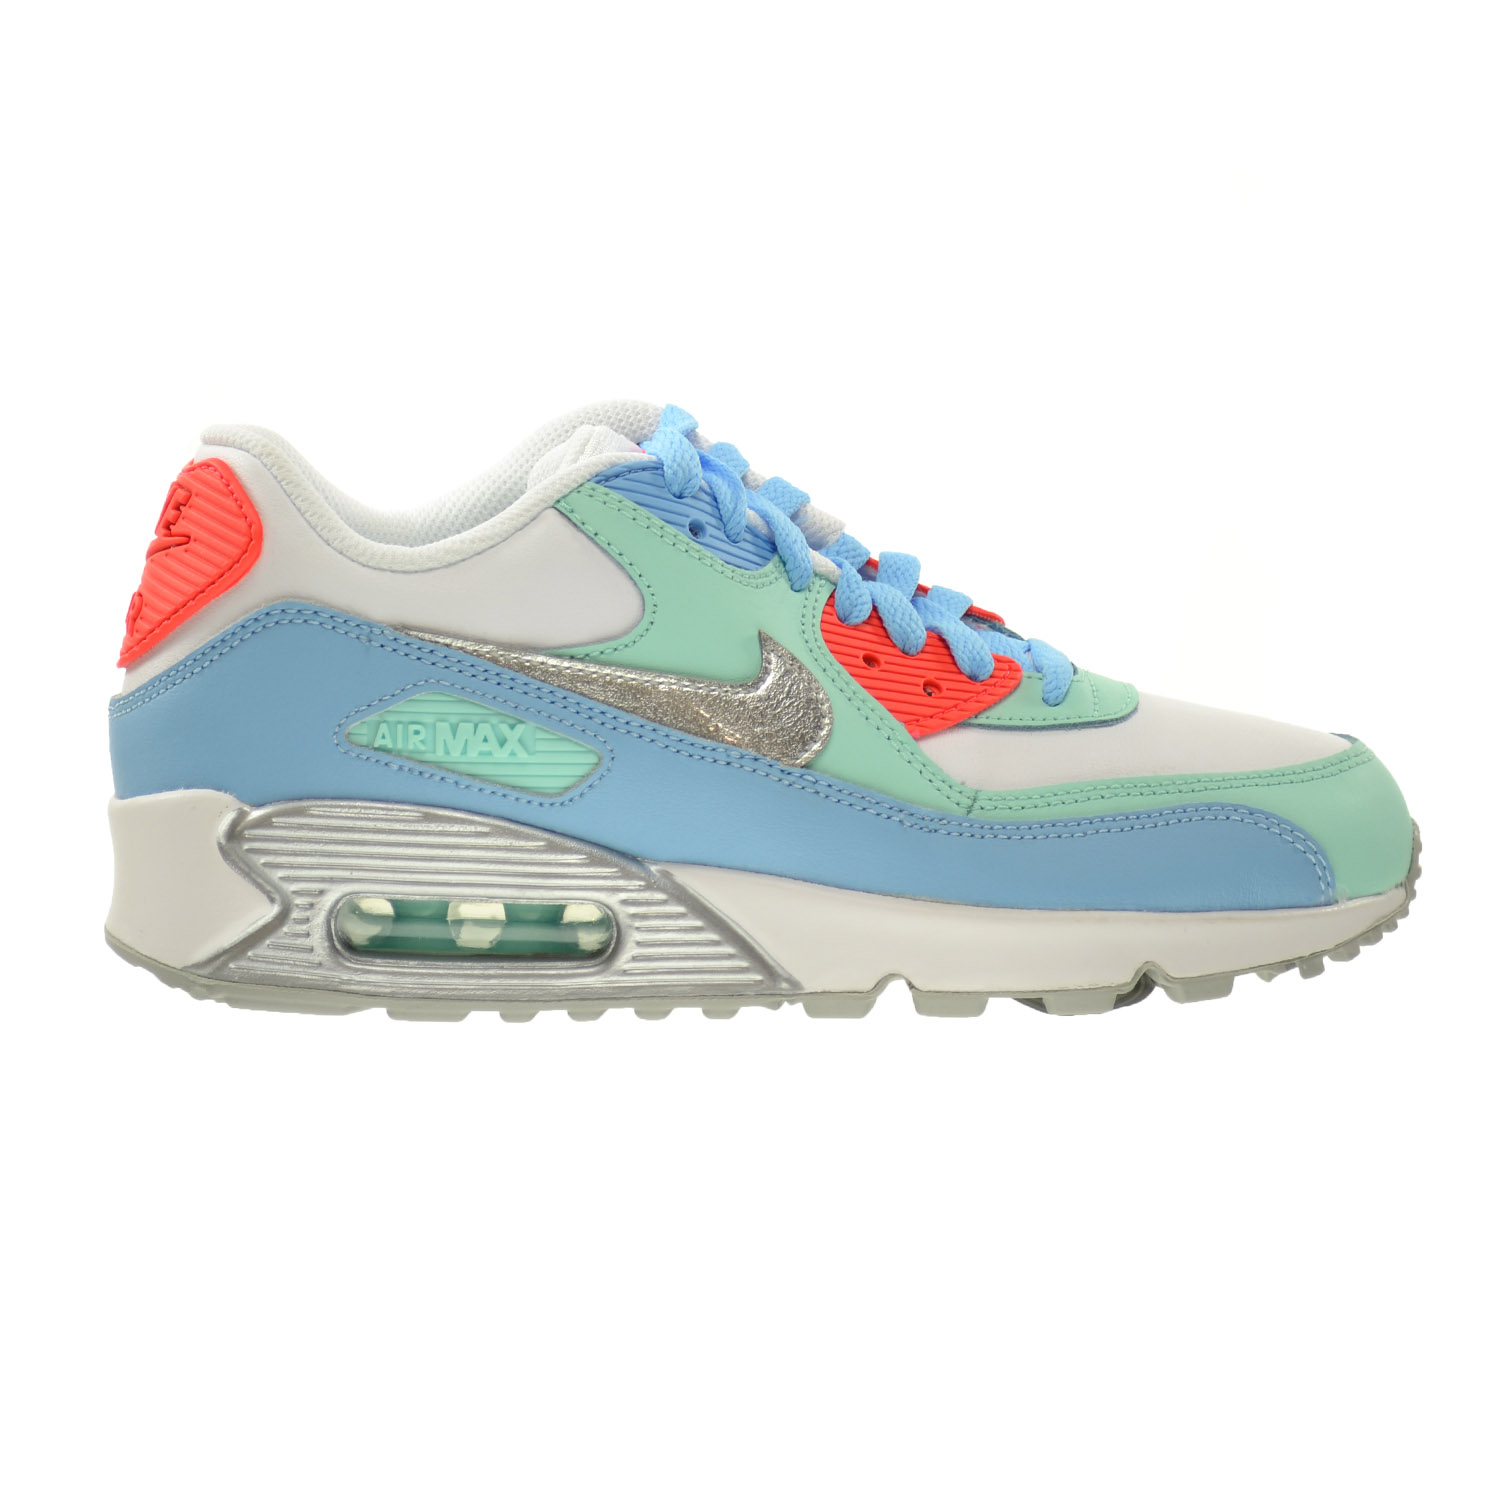 4fef1004507e0 czech air max 90 white 5.5 17a4b 25826